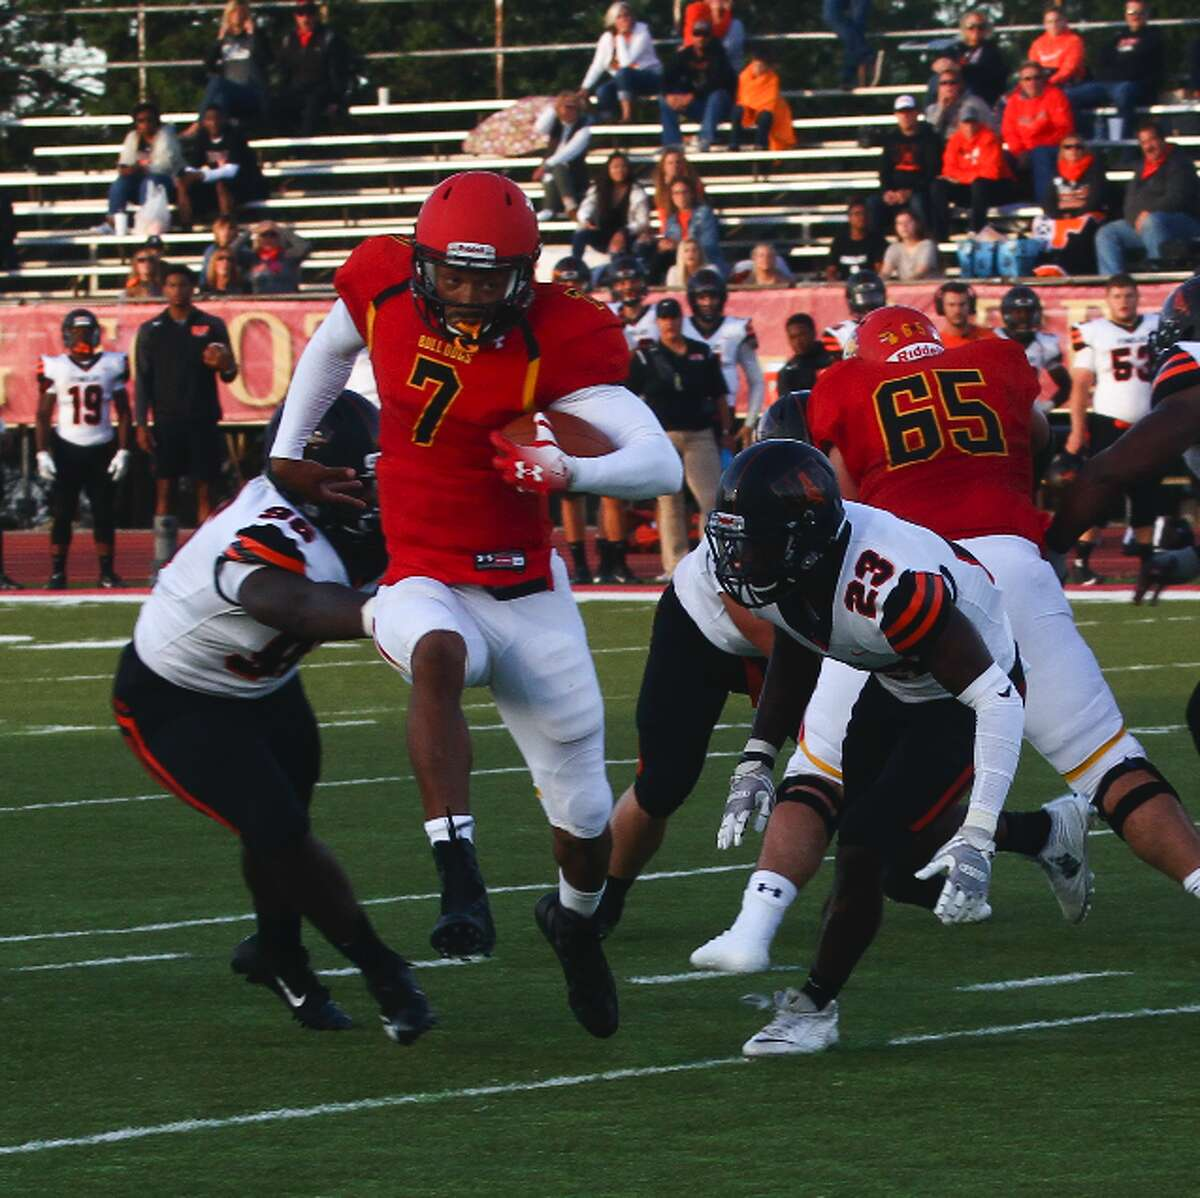 Ferris State quarterback Jayru Campbell escapes would-be tacklers during Saturday's game. (Pioneer photo/Maxwell Harden)